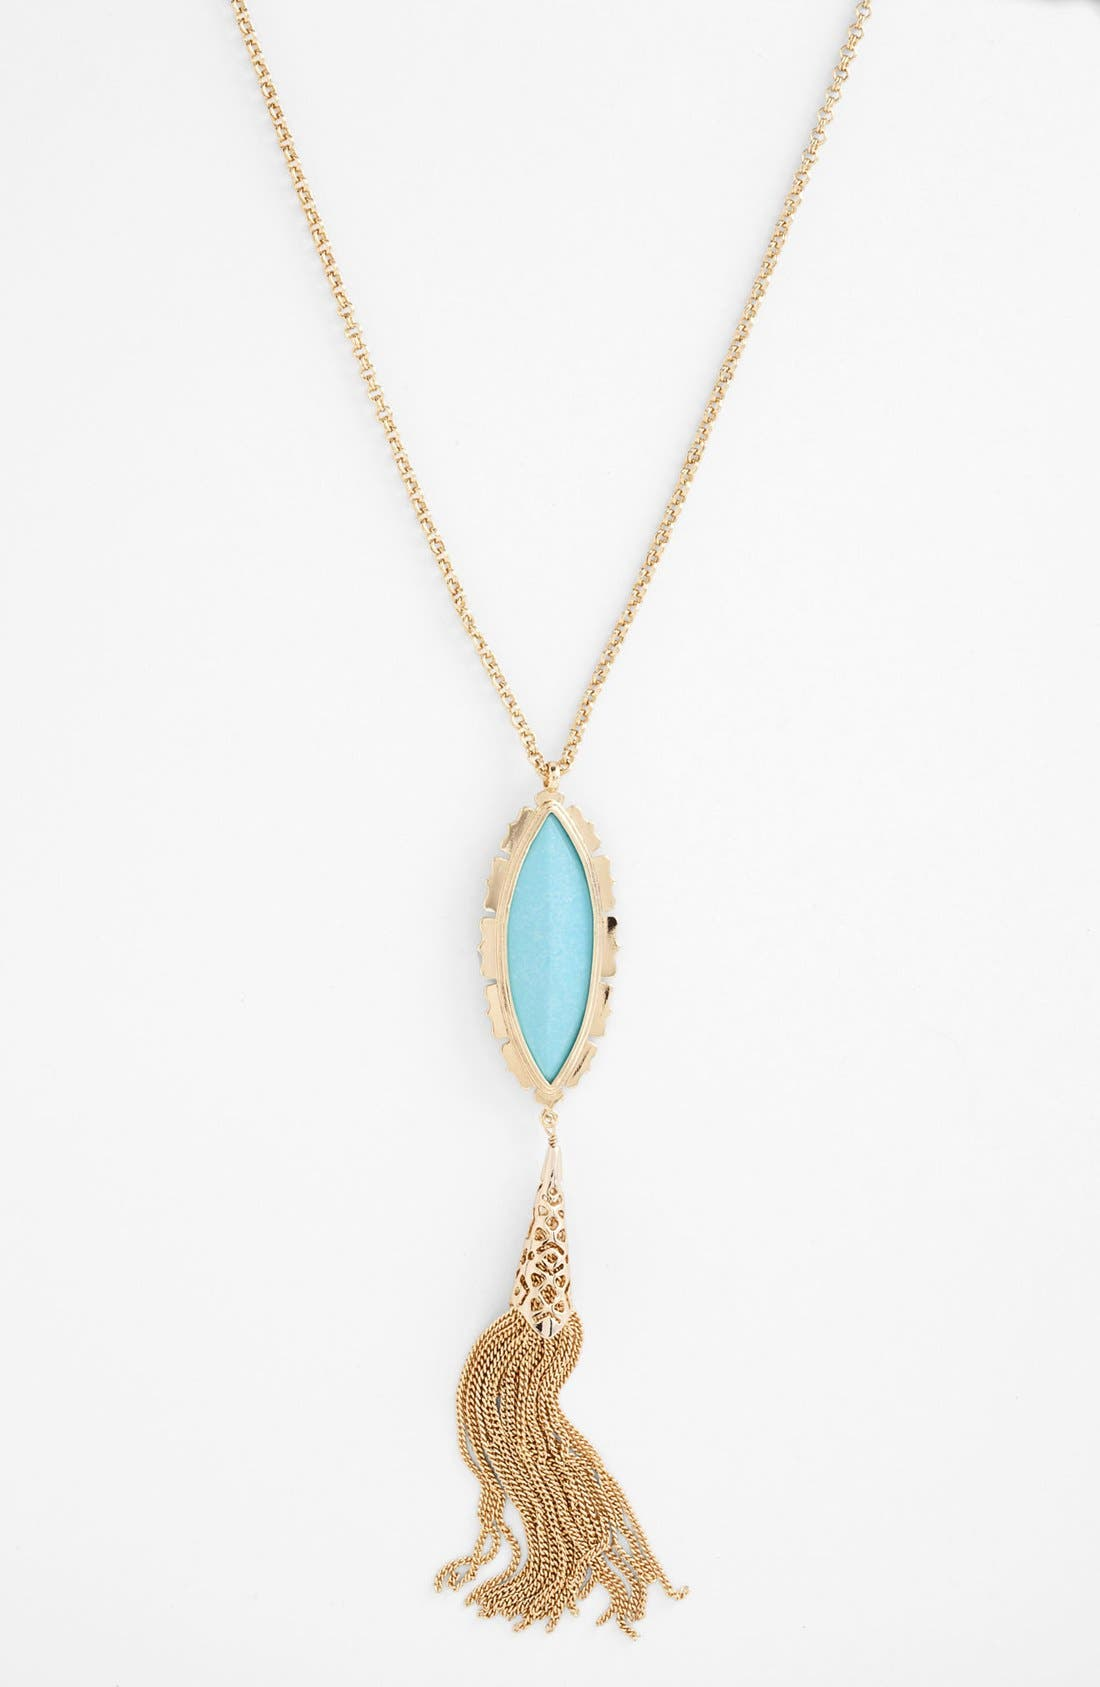 Alternate Image 1 Selected - Kendra Scott 'Neva' Pendant Necklace